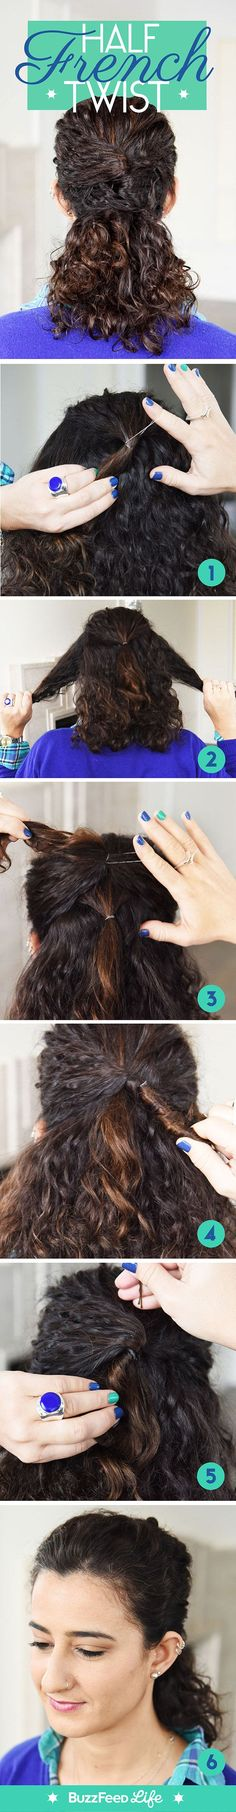 Half French Twist | 14 Wedding Hairstyles You Can DIY For The Occasion